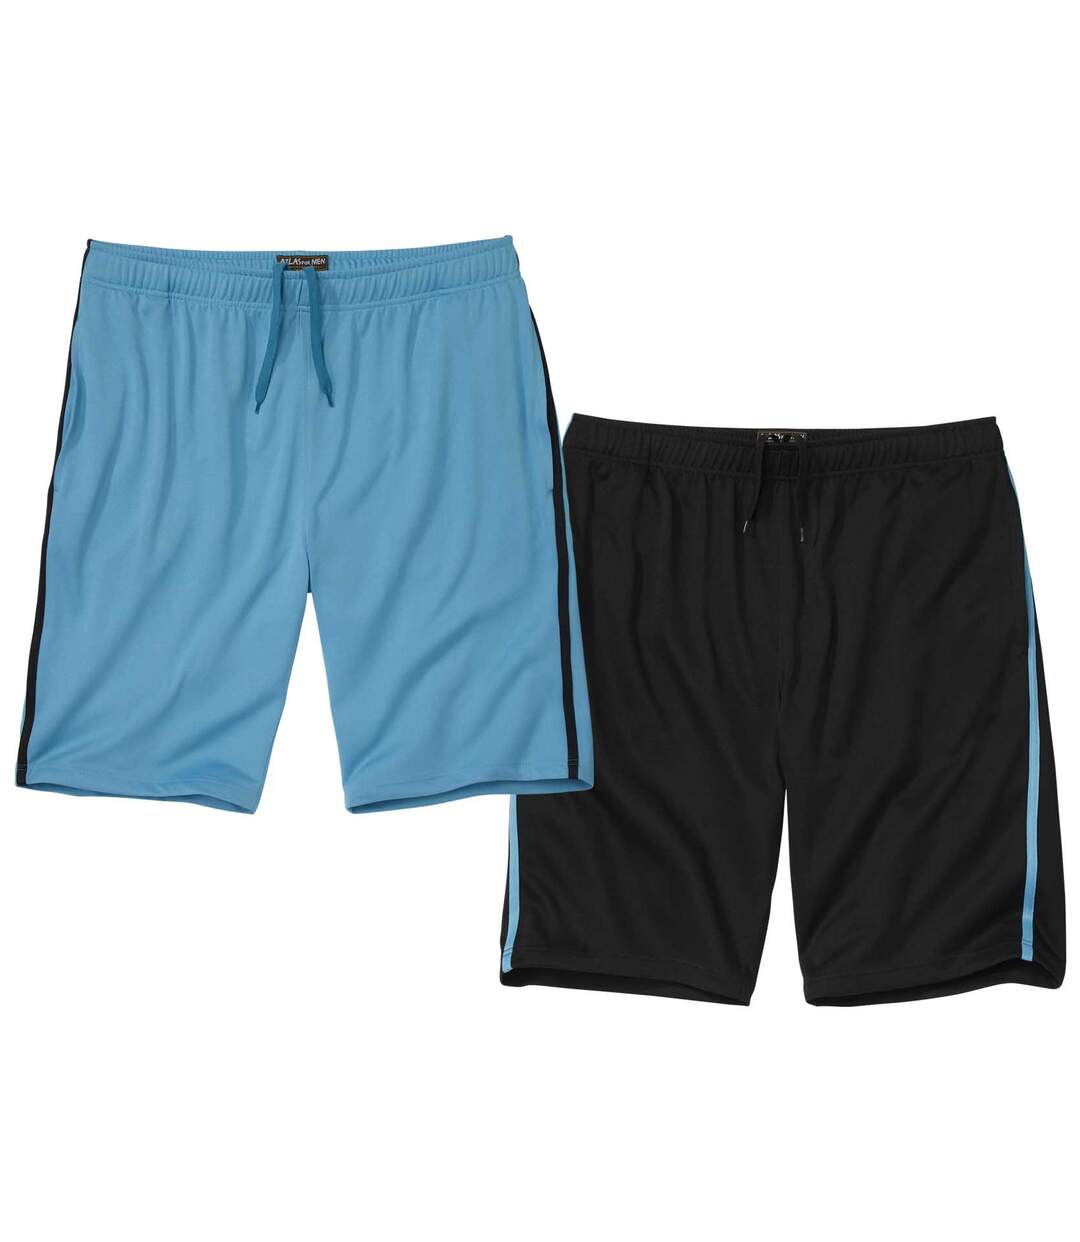 Set van 2 Summer Sport shorts